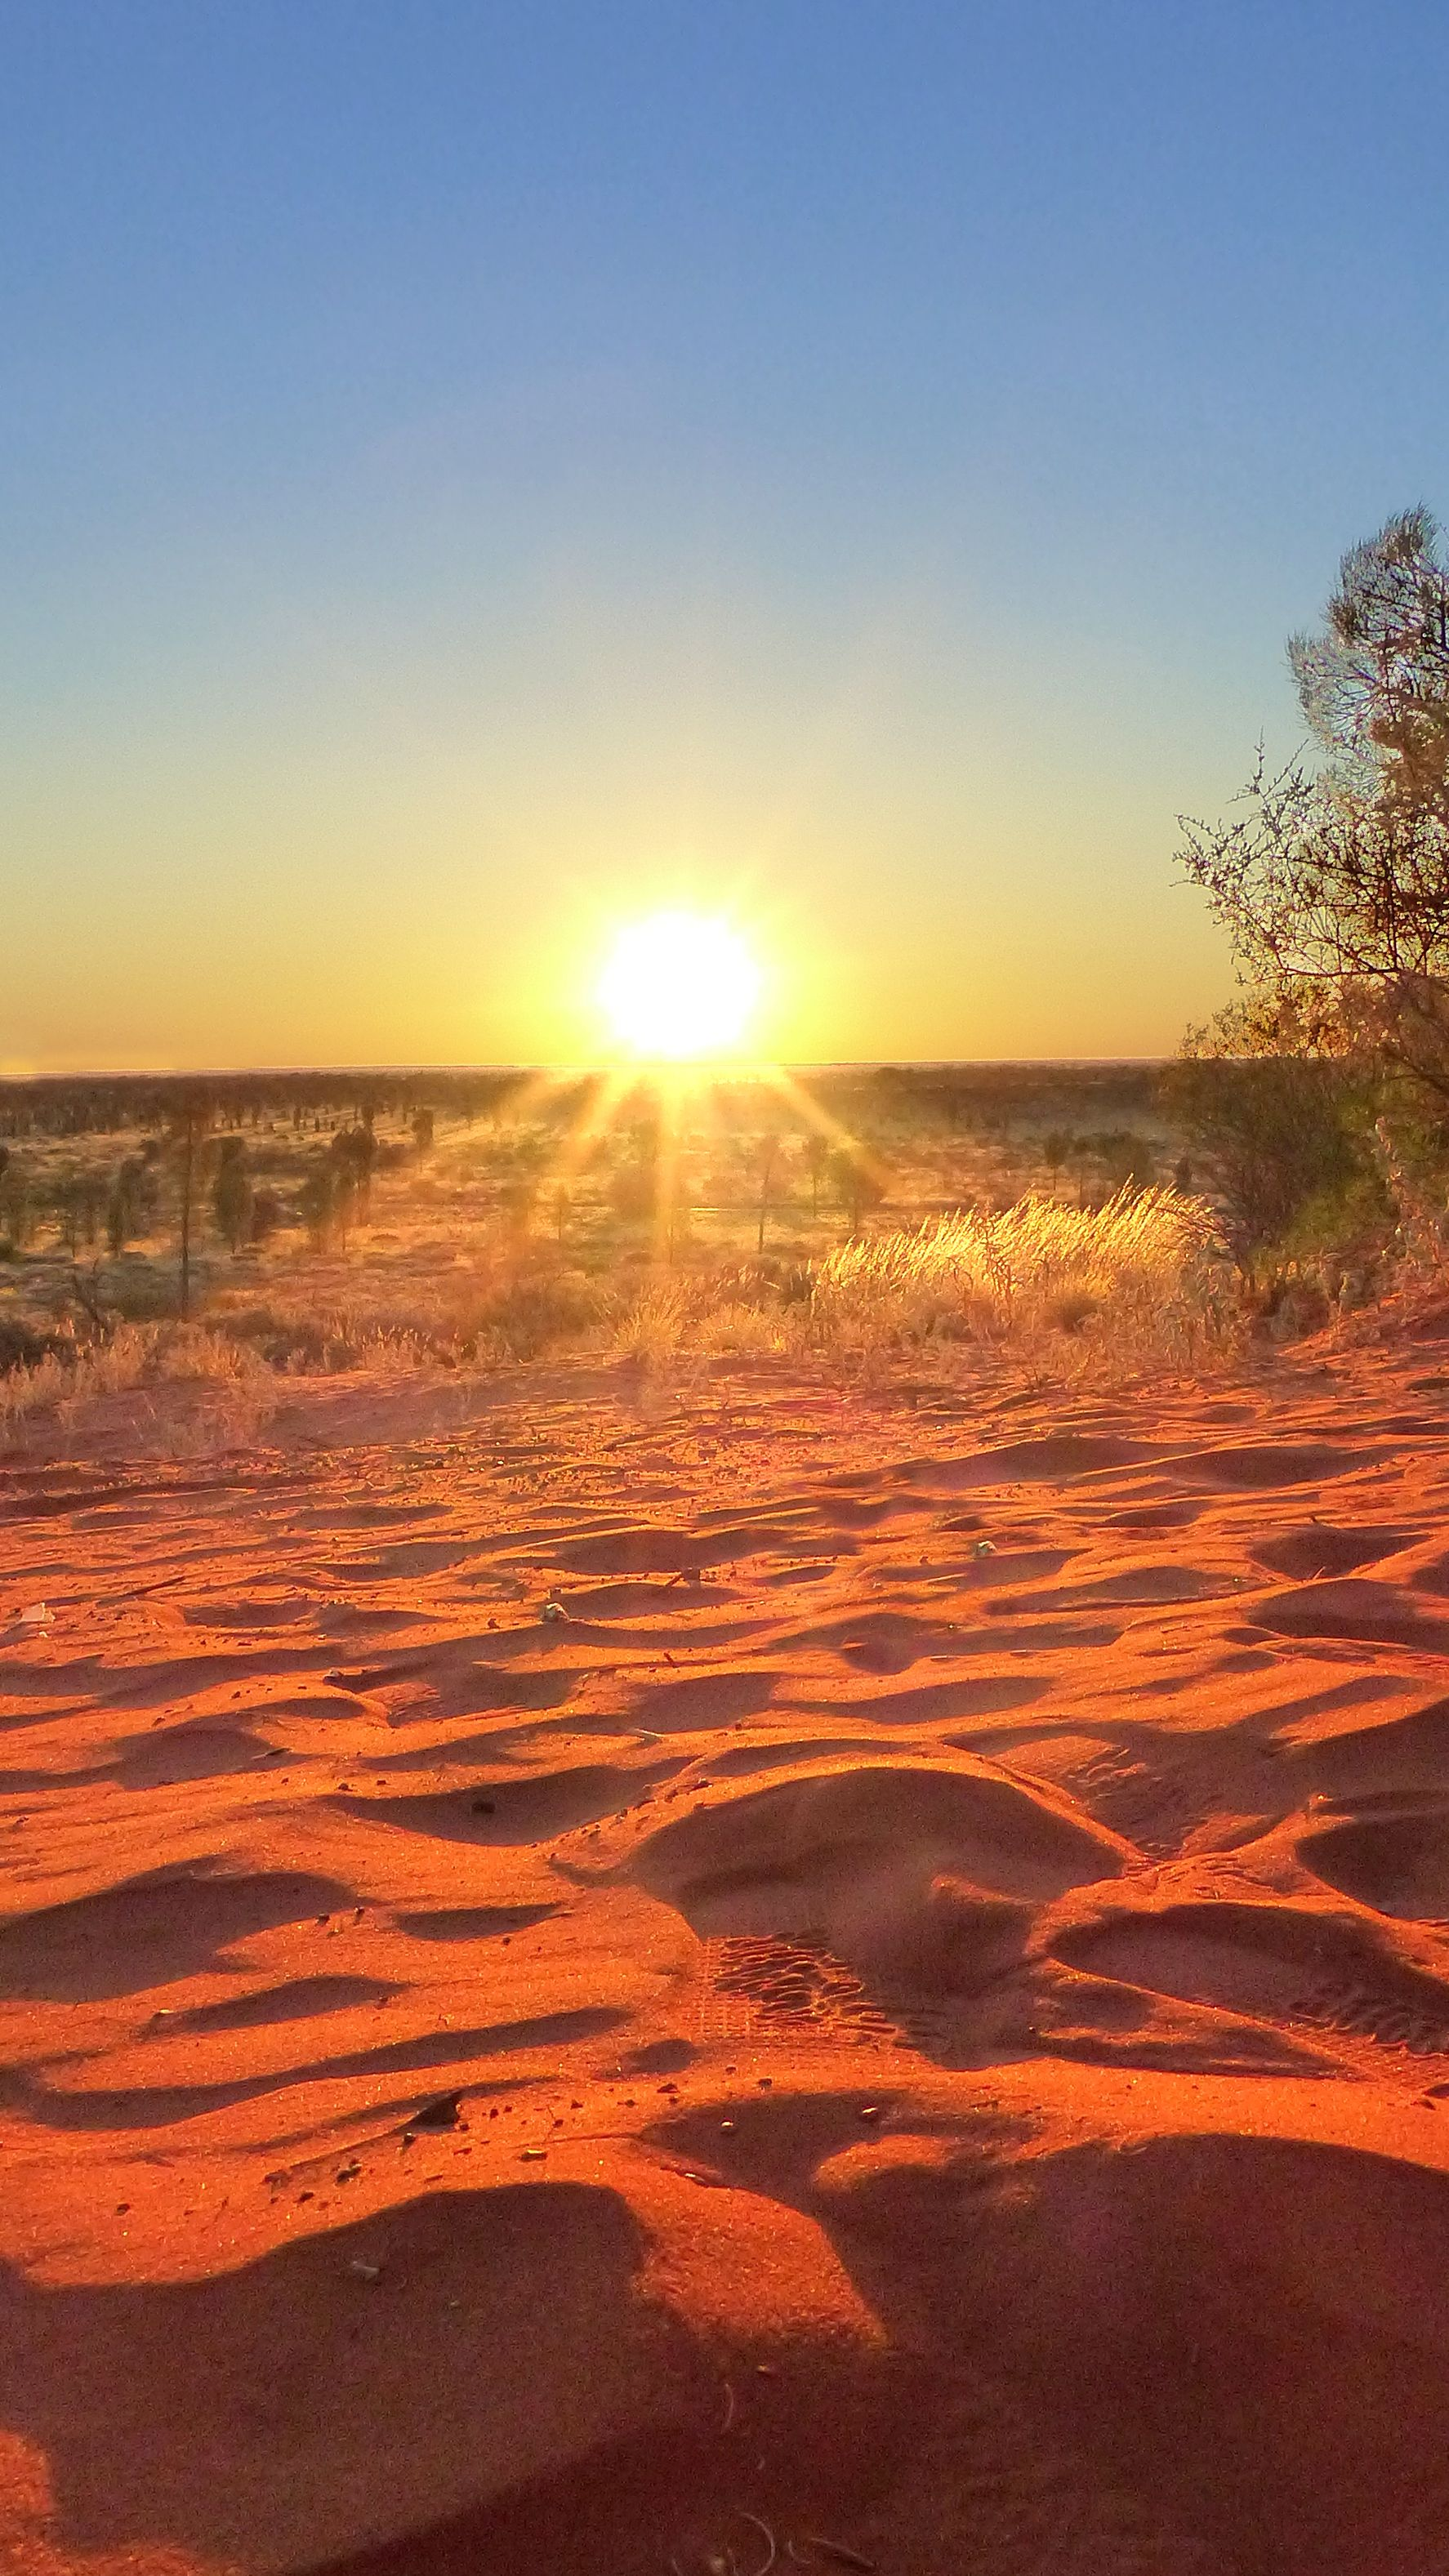 The Australian outback. If you go, you need to try out sleeping in a swag. Here's how to: http://travelonthebrain.net/going-camping-outback-heres-consider-2 | Travel on the Brain